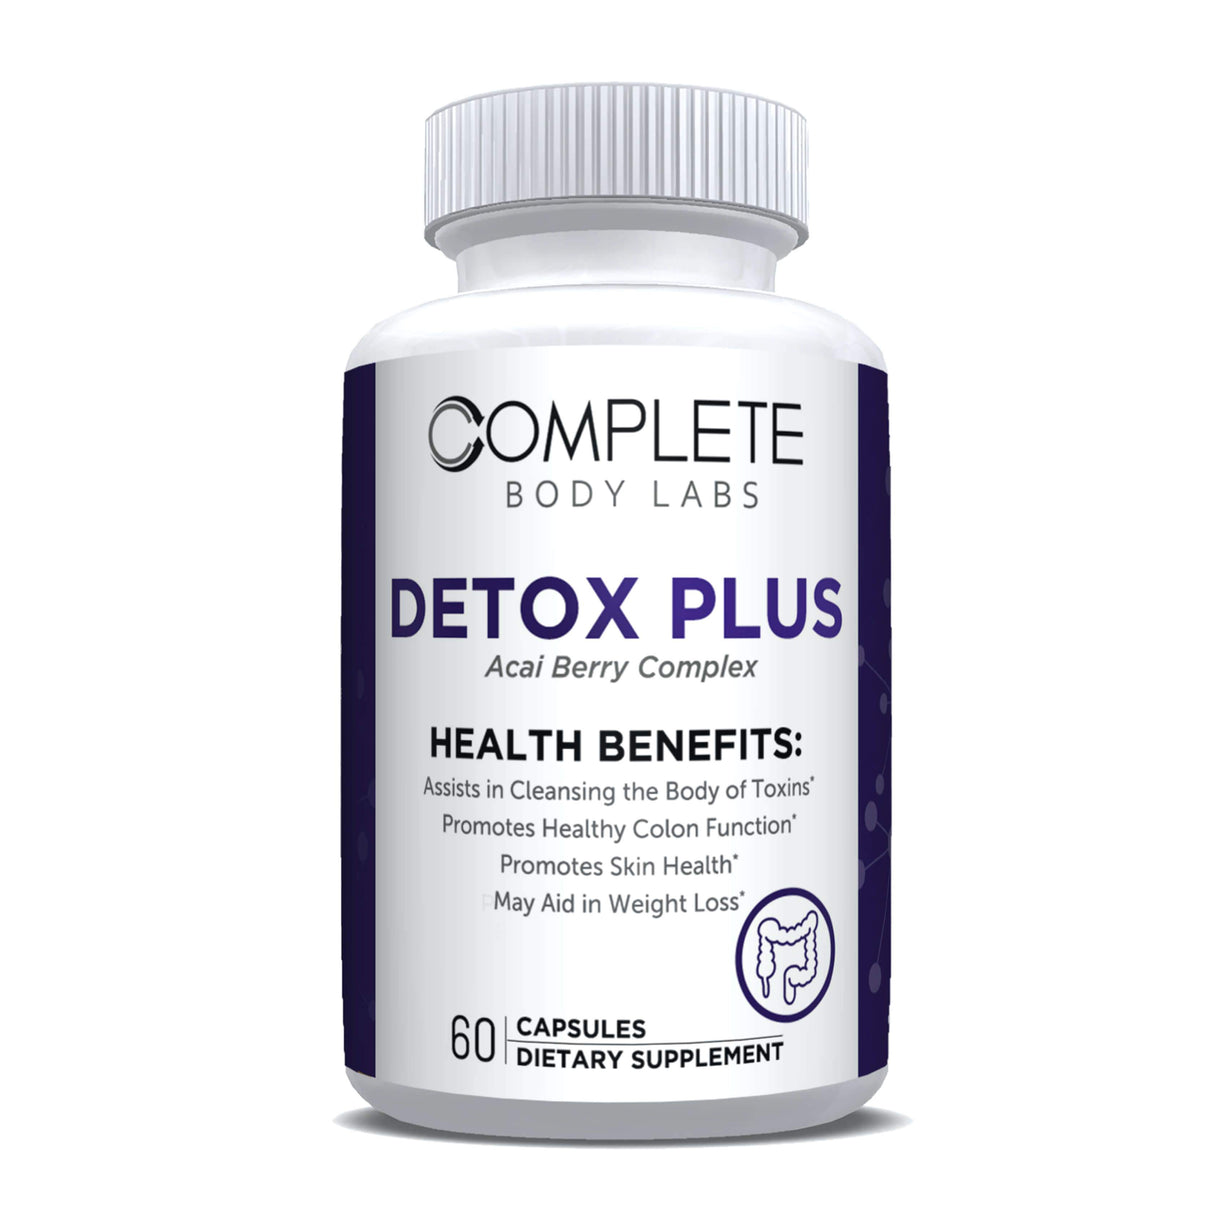 DETOX PLUS Complete Body Labs | Probiotics, Nootropics, Brain Supplements, Protein Bars, Workout Supplements, Health Supplements, Omega-3 & Essential Vitamins For Men & Women